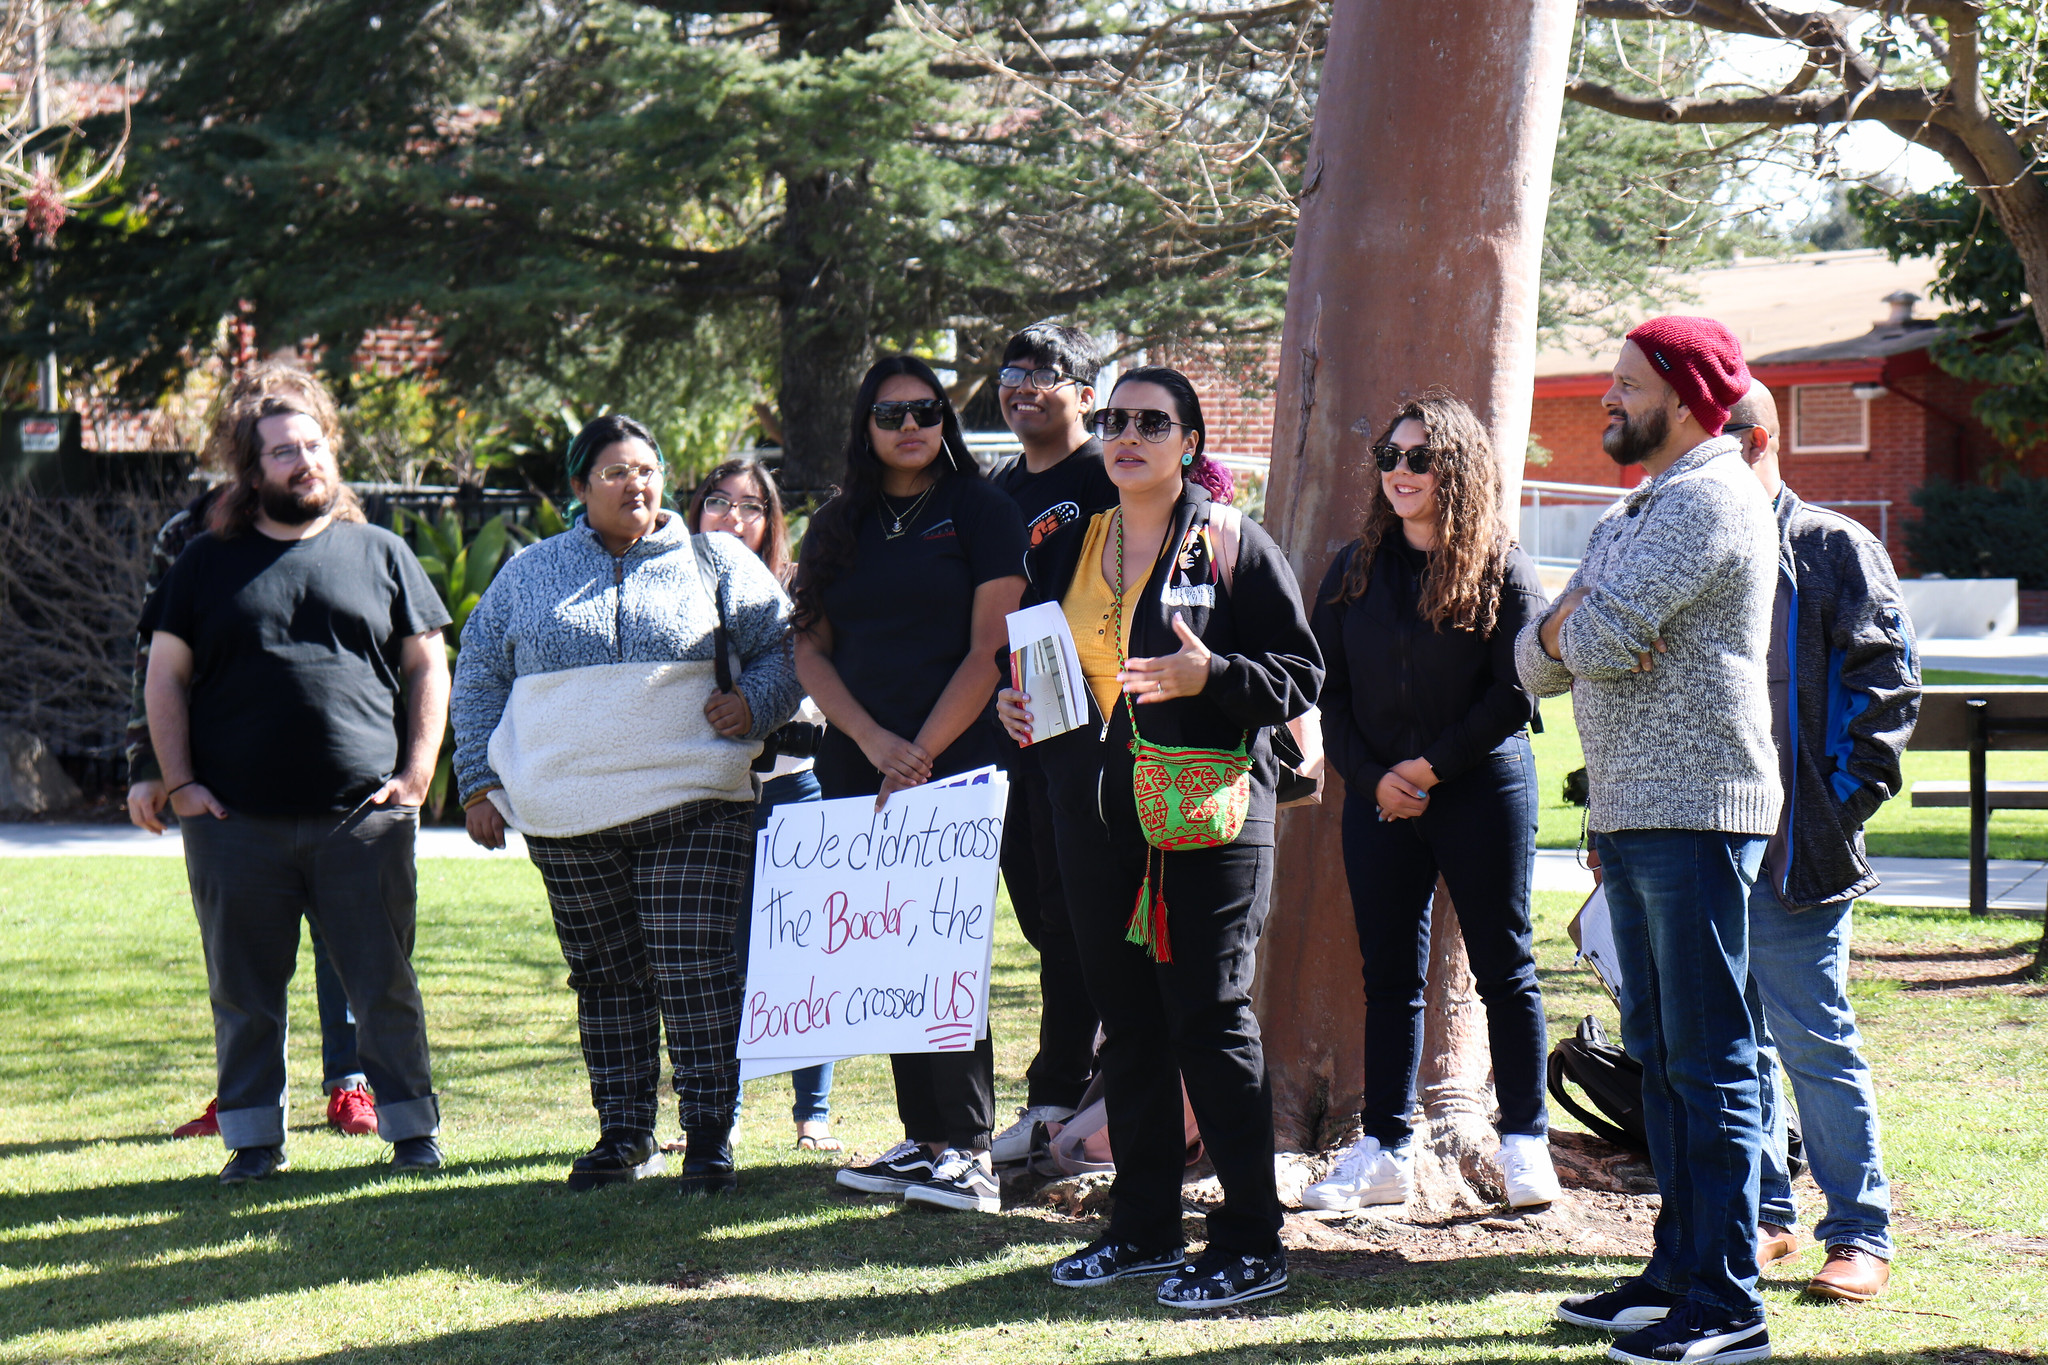 Students stage protest over Border patrol career event